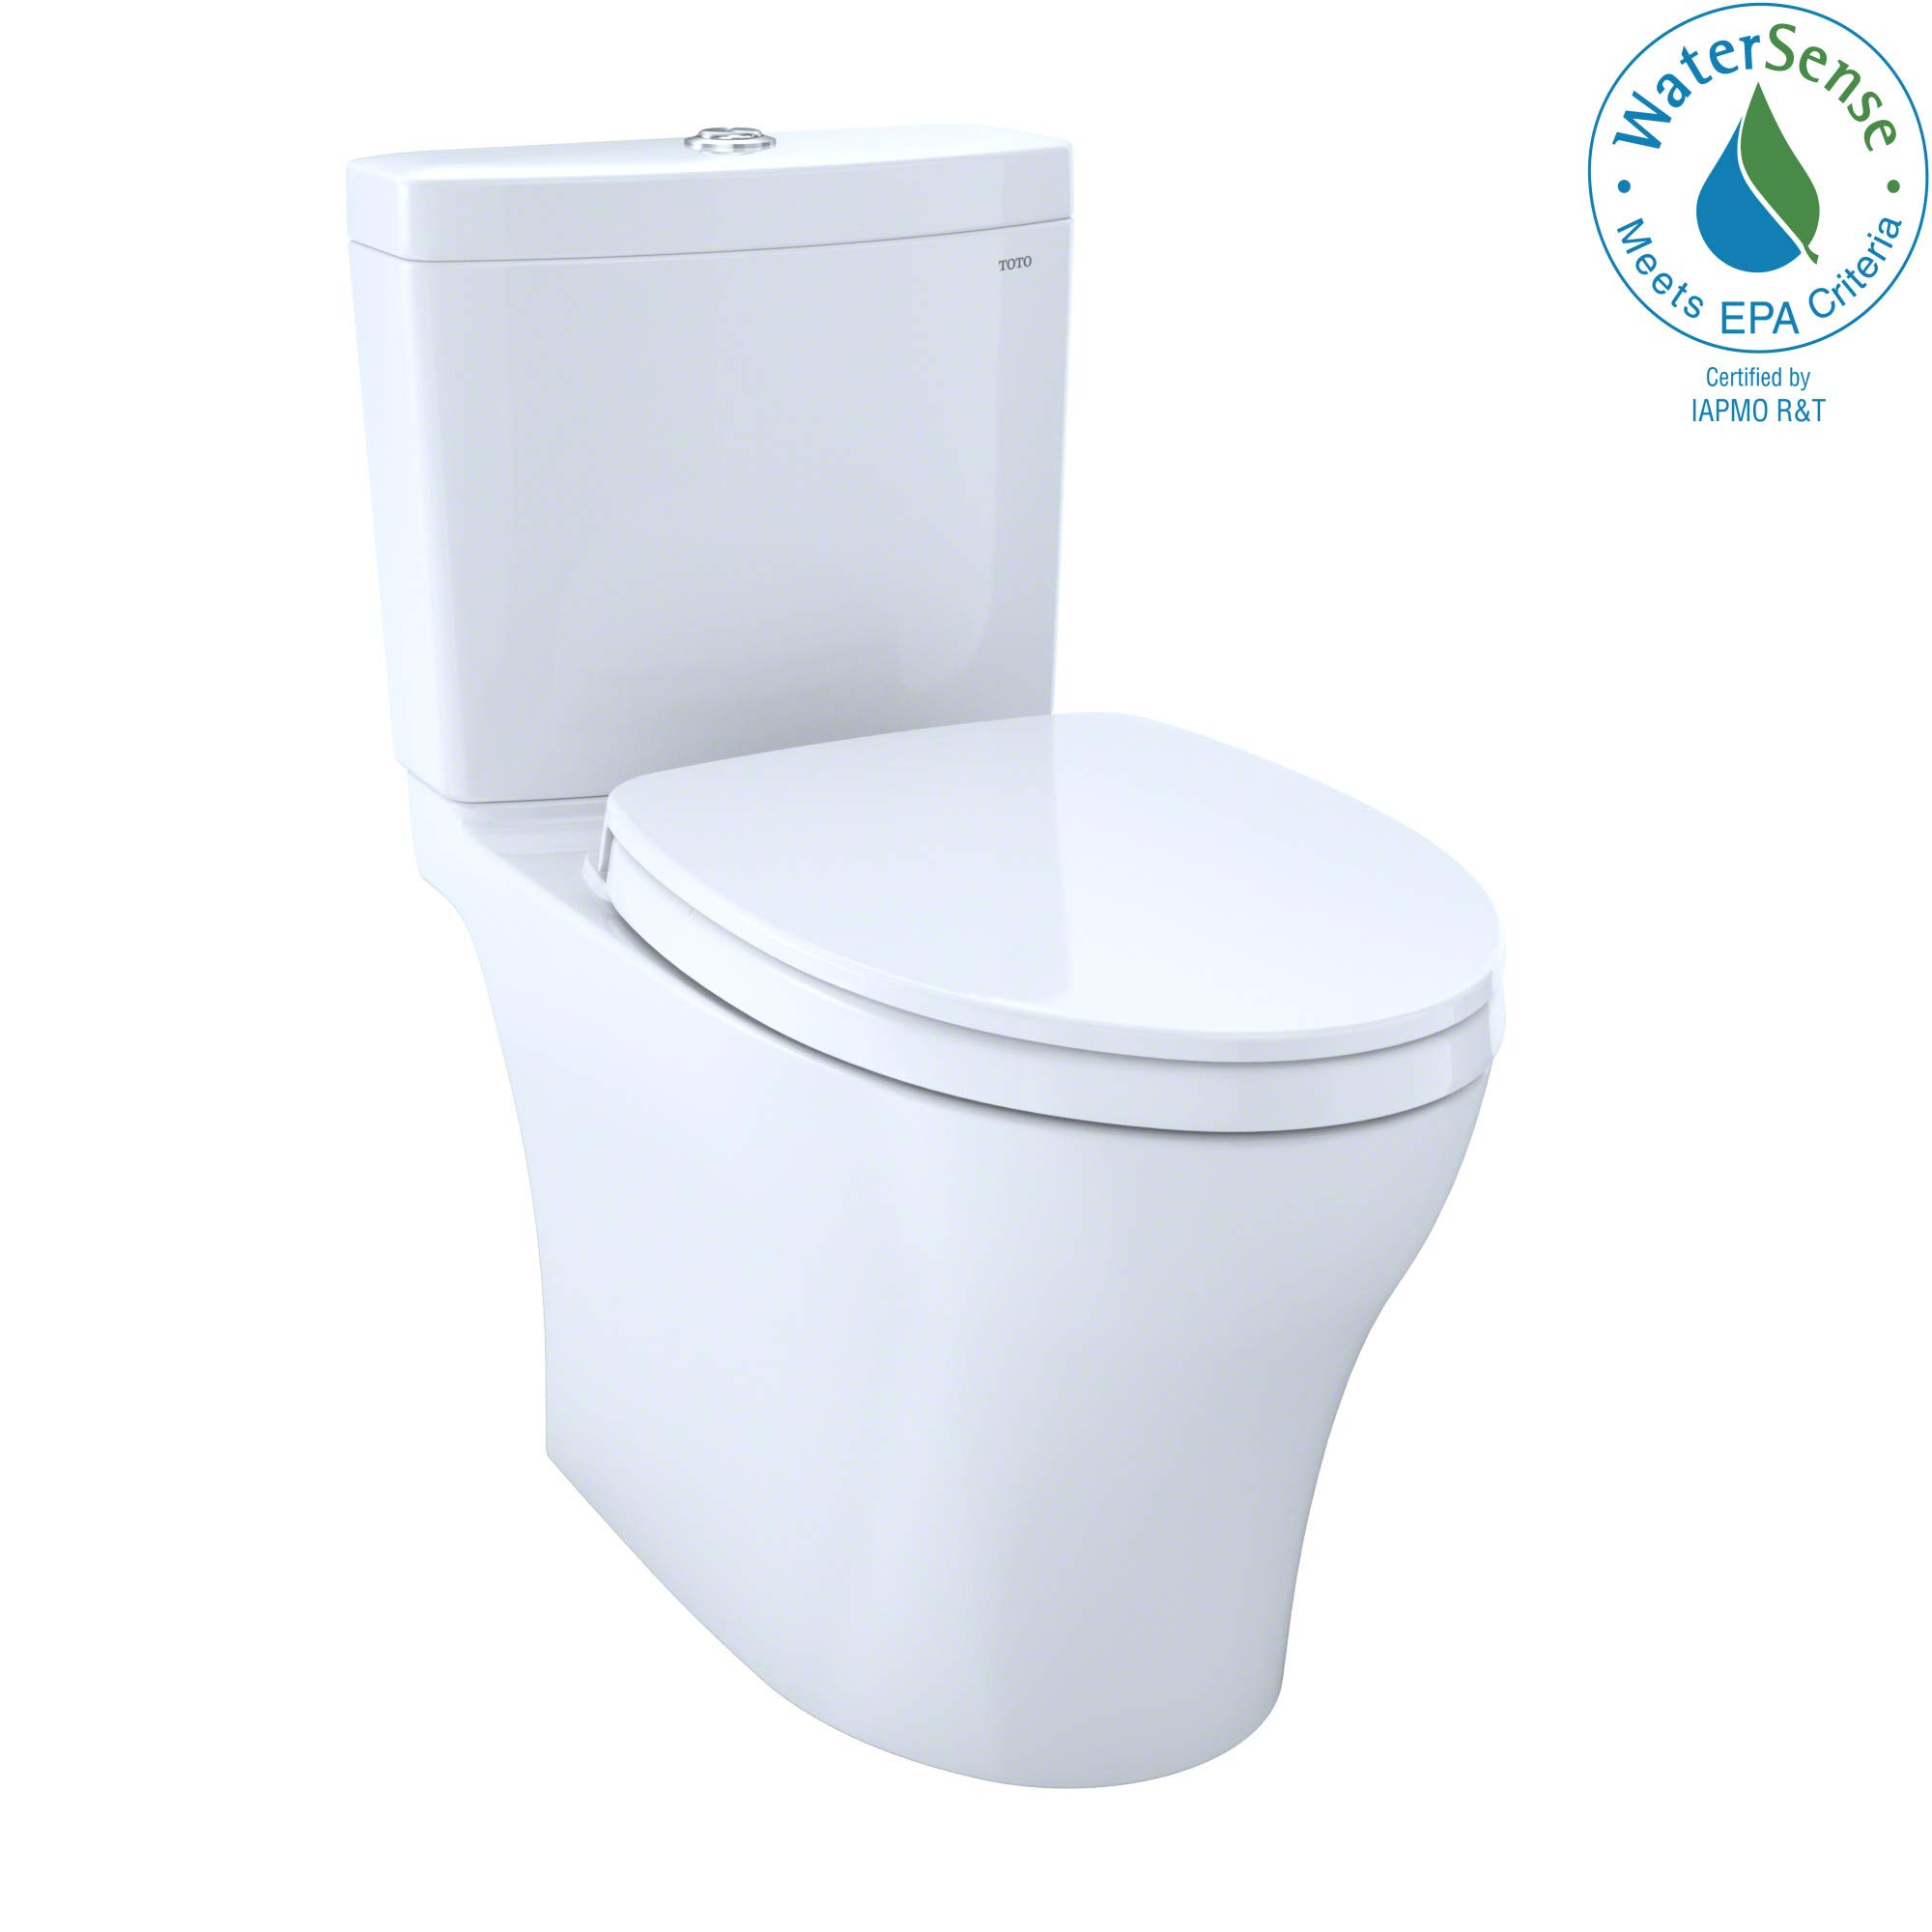 TOTO MS446124CEMG#01 Aquia IV WASHLET Elongated Dual Flush 1.28 and 0.8 GPF CeFiONtect, White-MS446124CEMG Two-Piece Toilet, 27.6 x 15.6 x 29.6 inches, Cotton White by TOTO